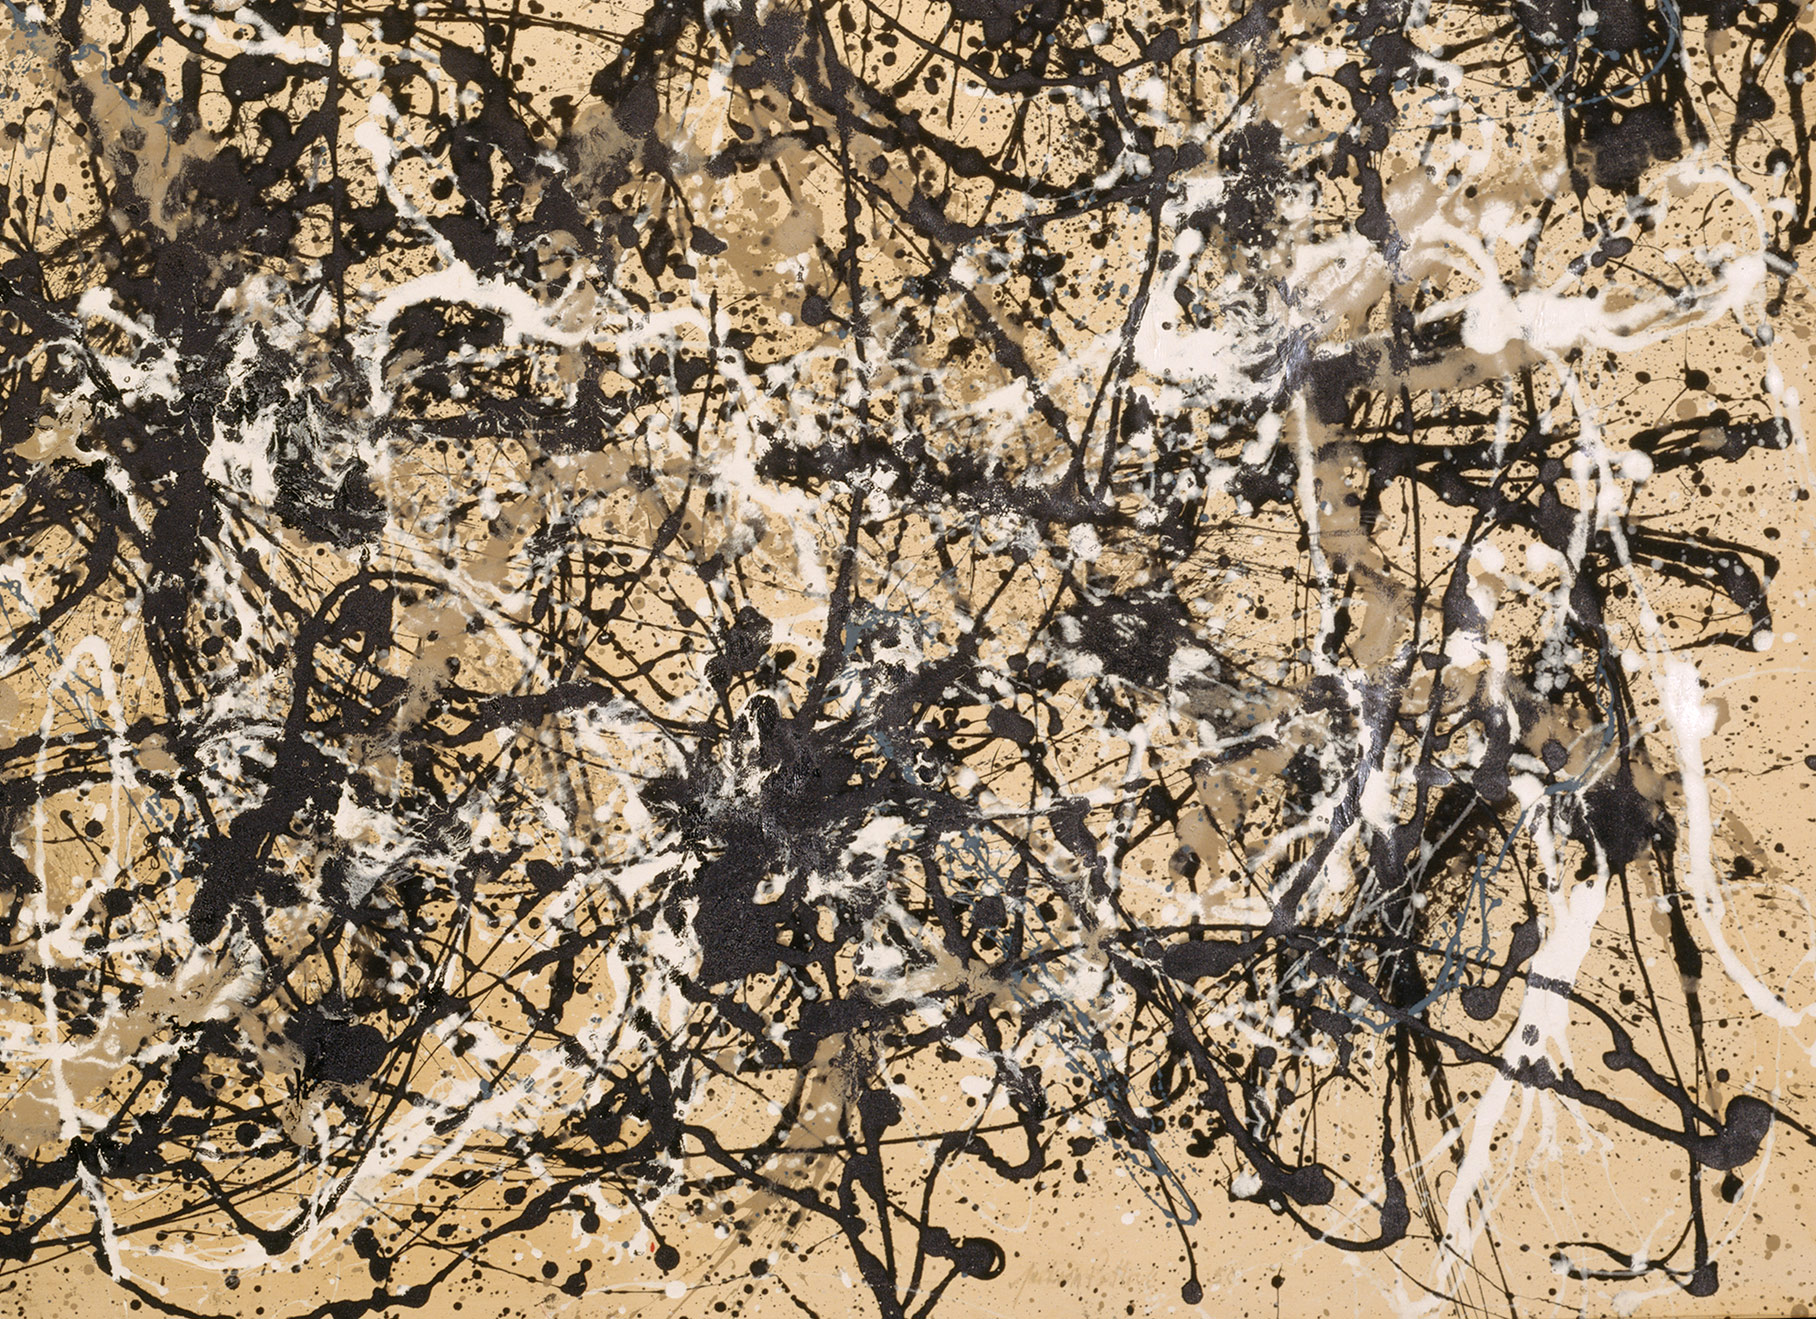 autumn rhythm number 30 jackson pollock 57 92 work of art autumn rhythm number 30